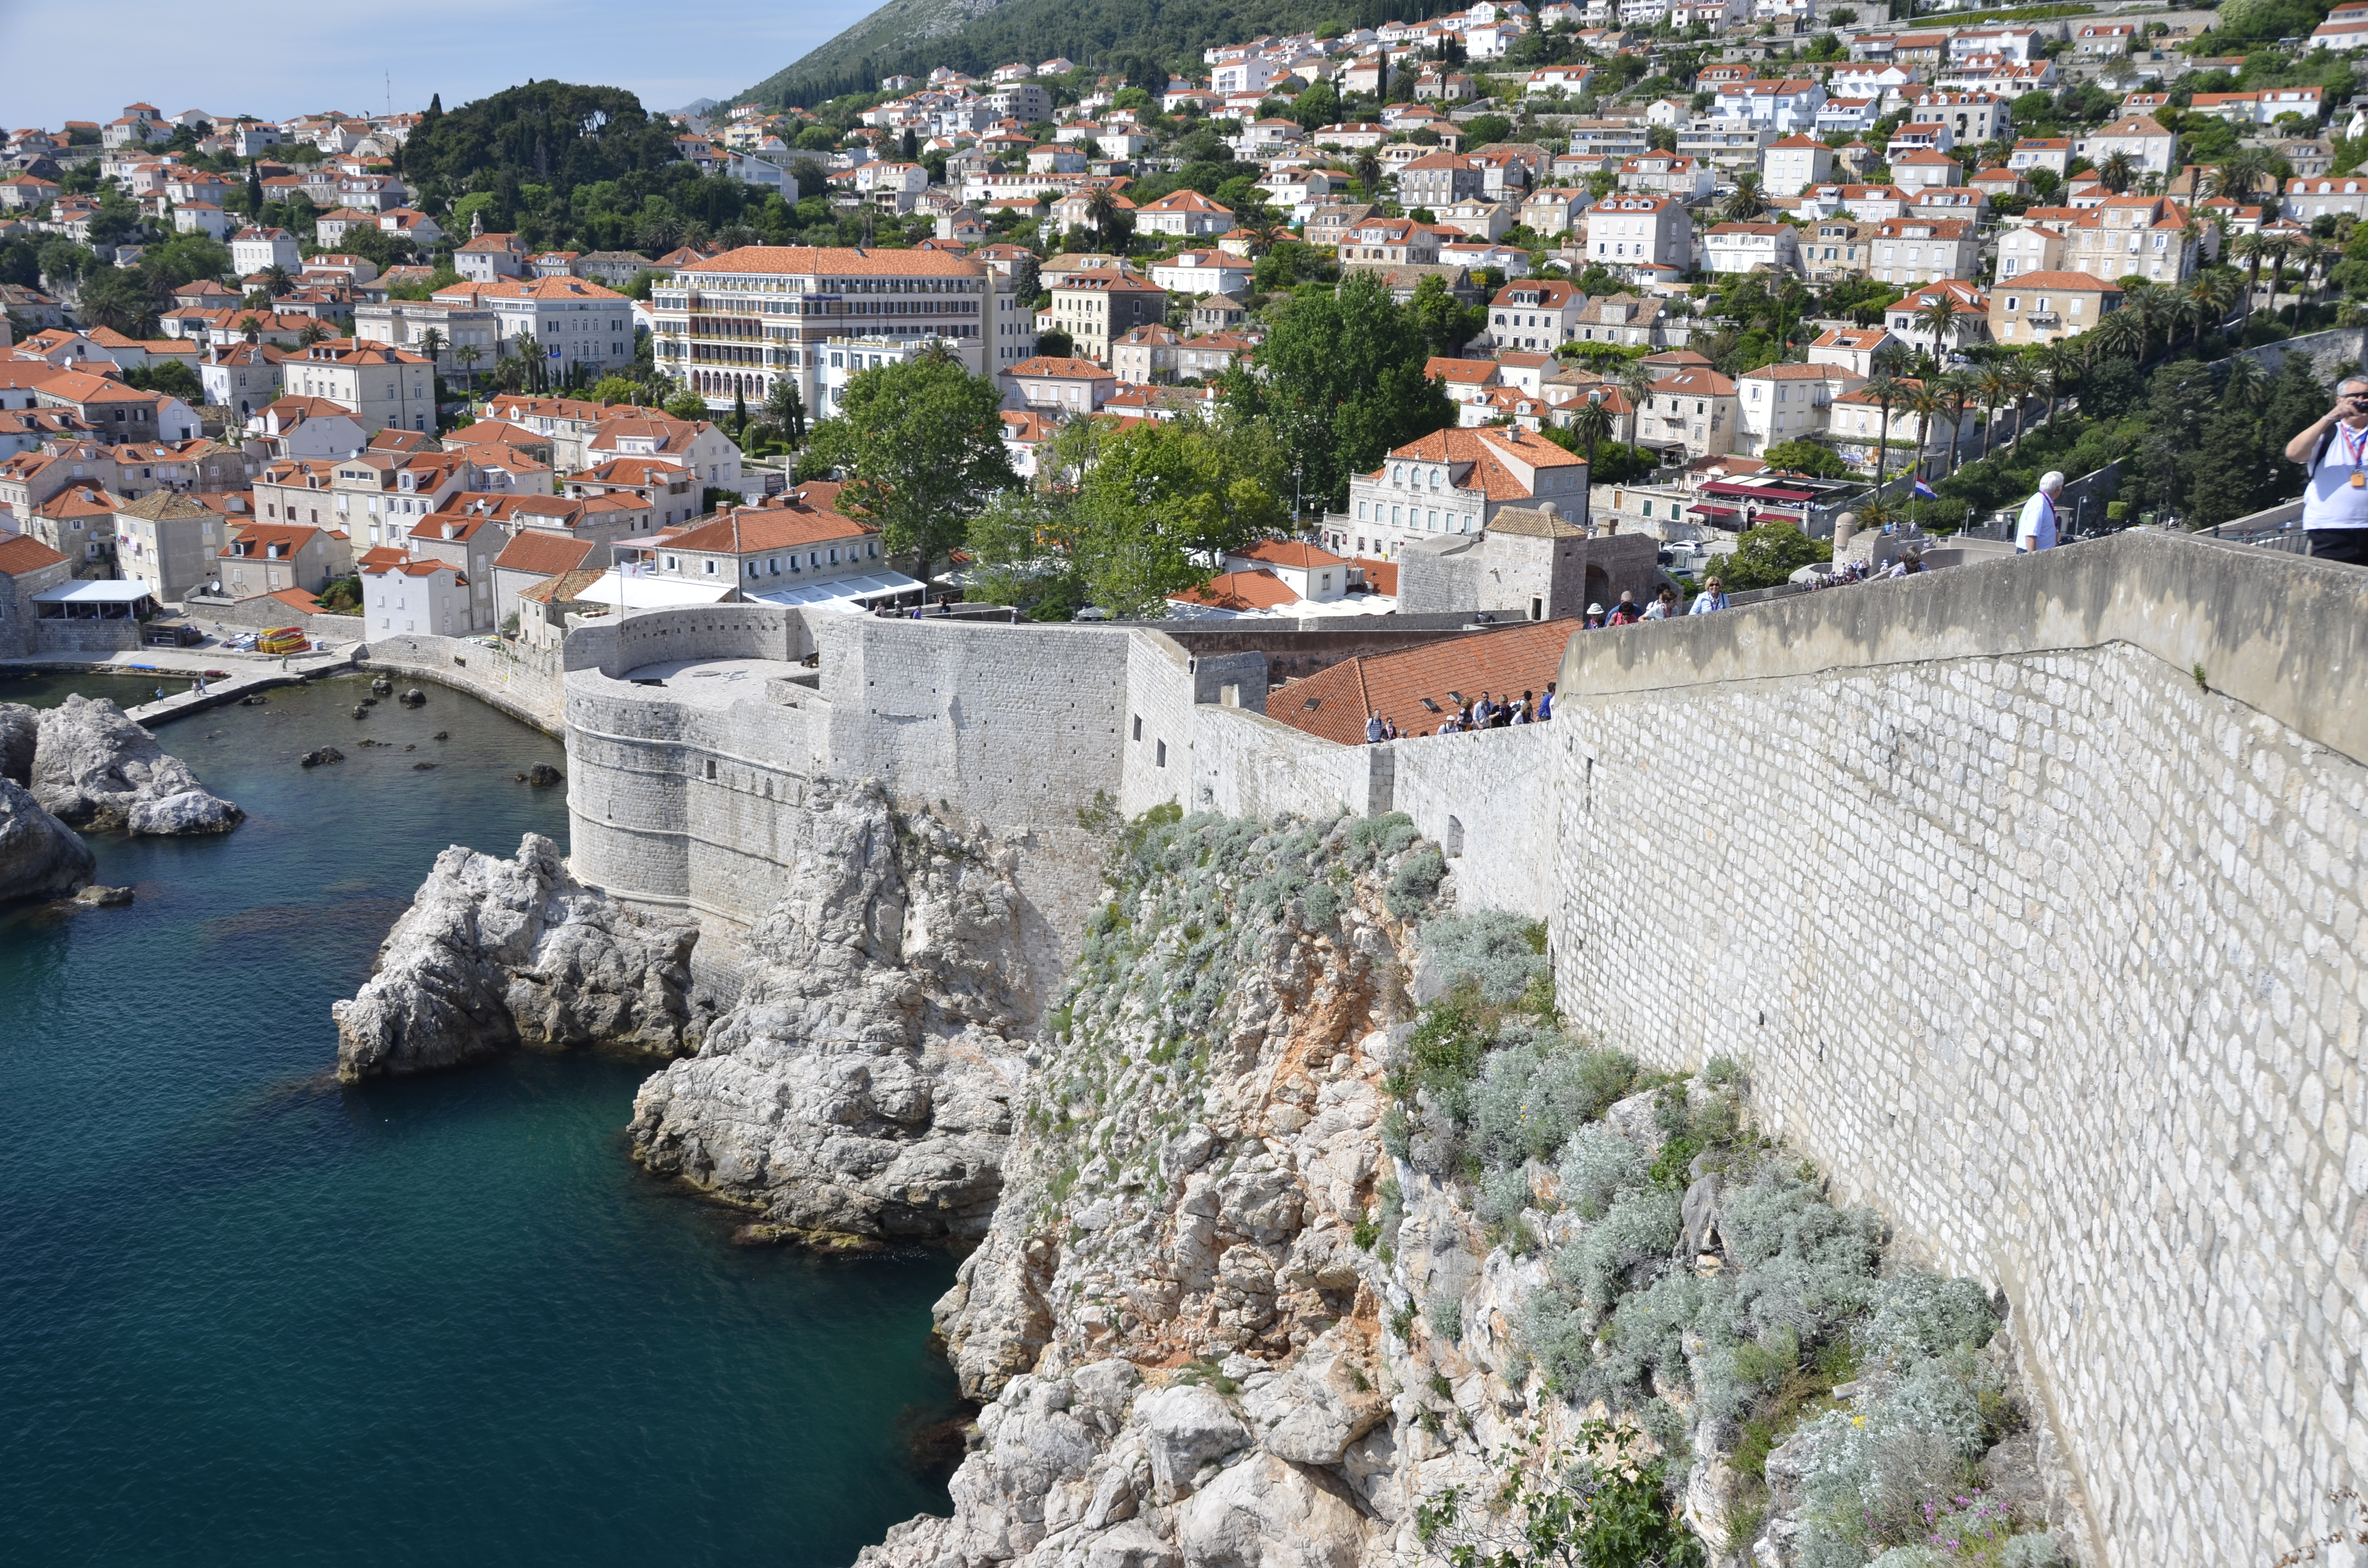 The walls of Dubrovnik surround the city. They are 1940 meters long (6365 feet).